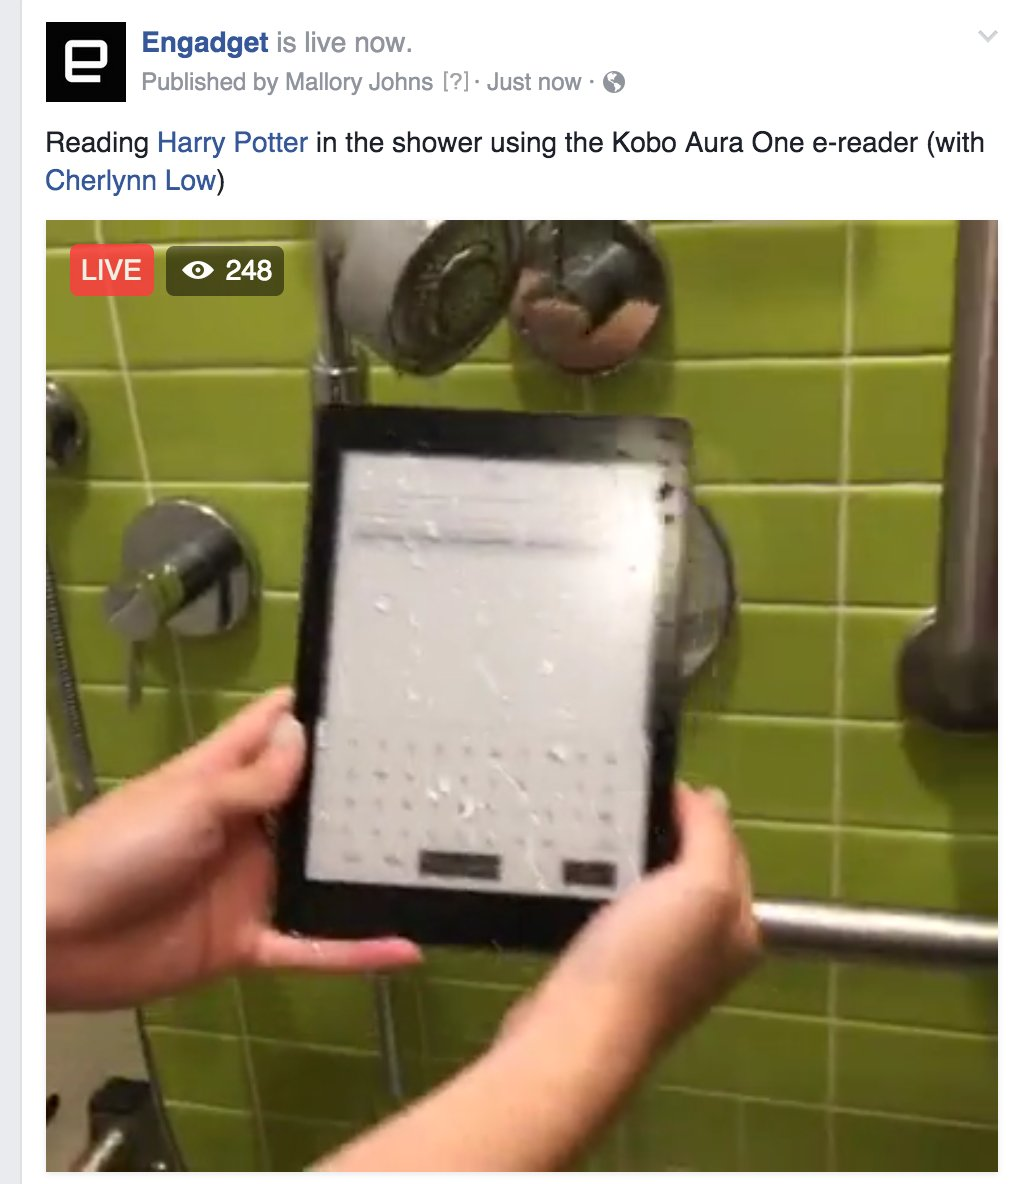 We're live in the shower testing out the new Kobo Aura One e-reader